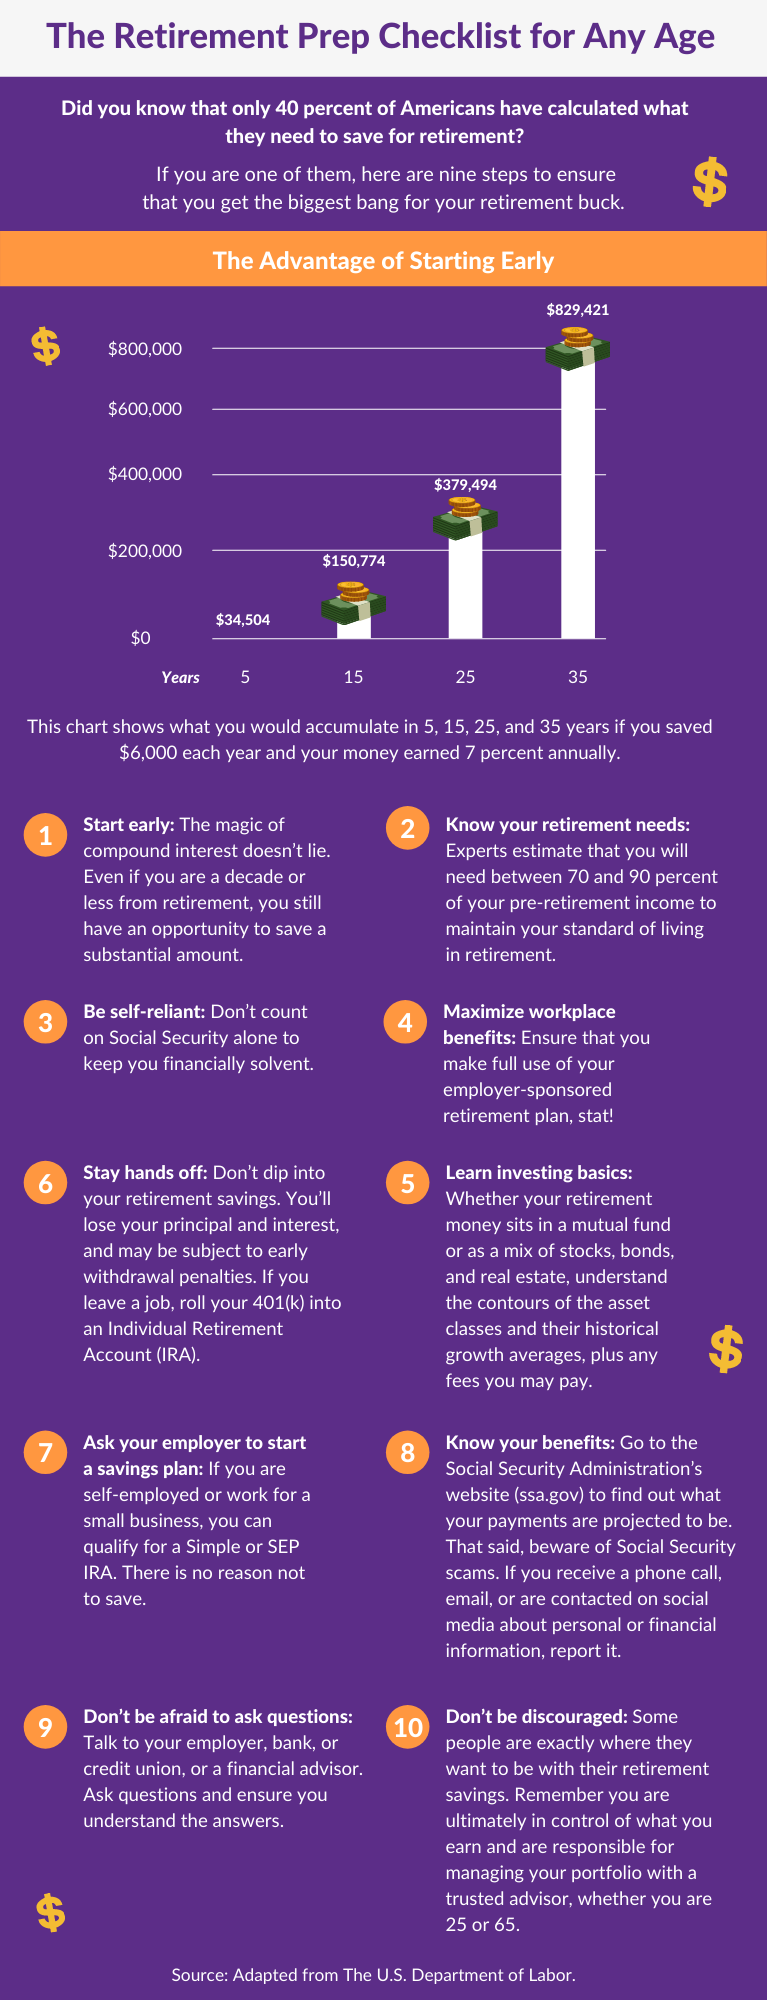 C The Retirement Prep Checklist for Any Age Infographic